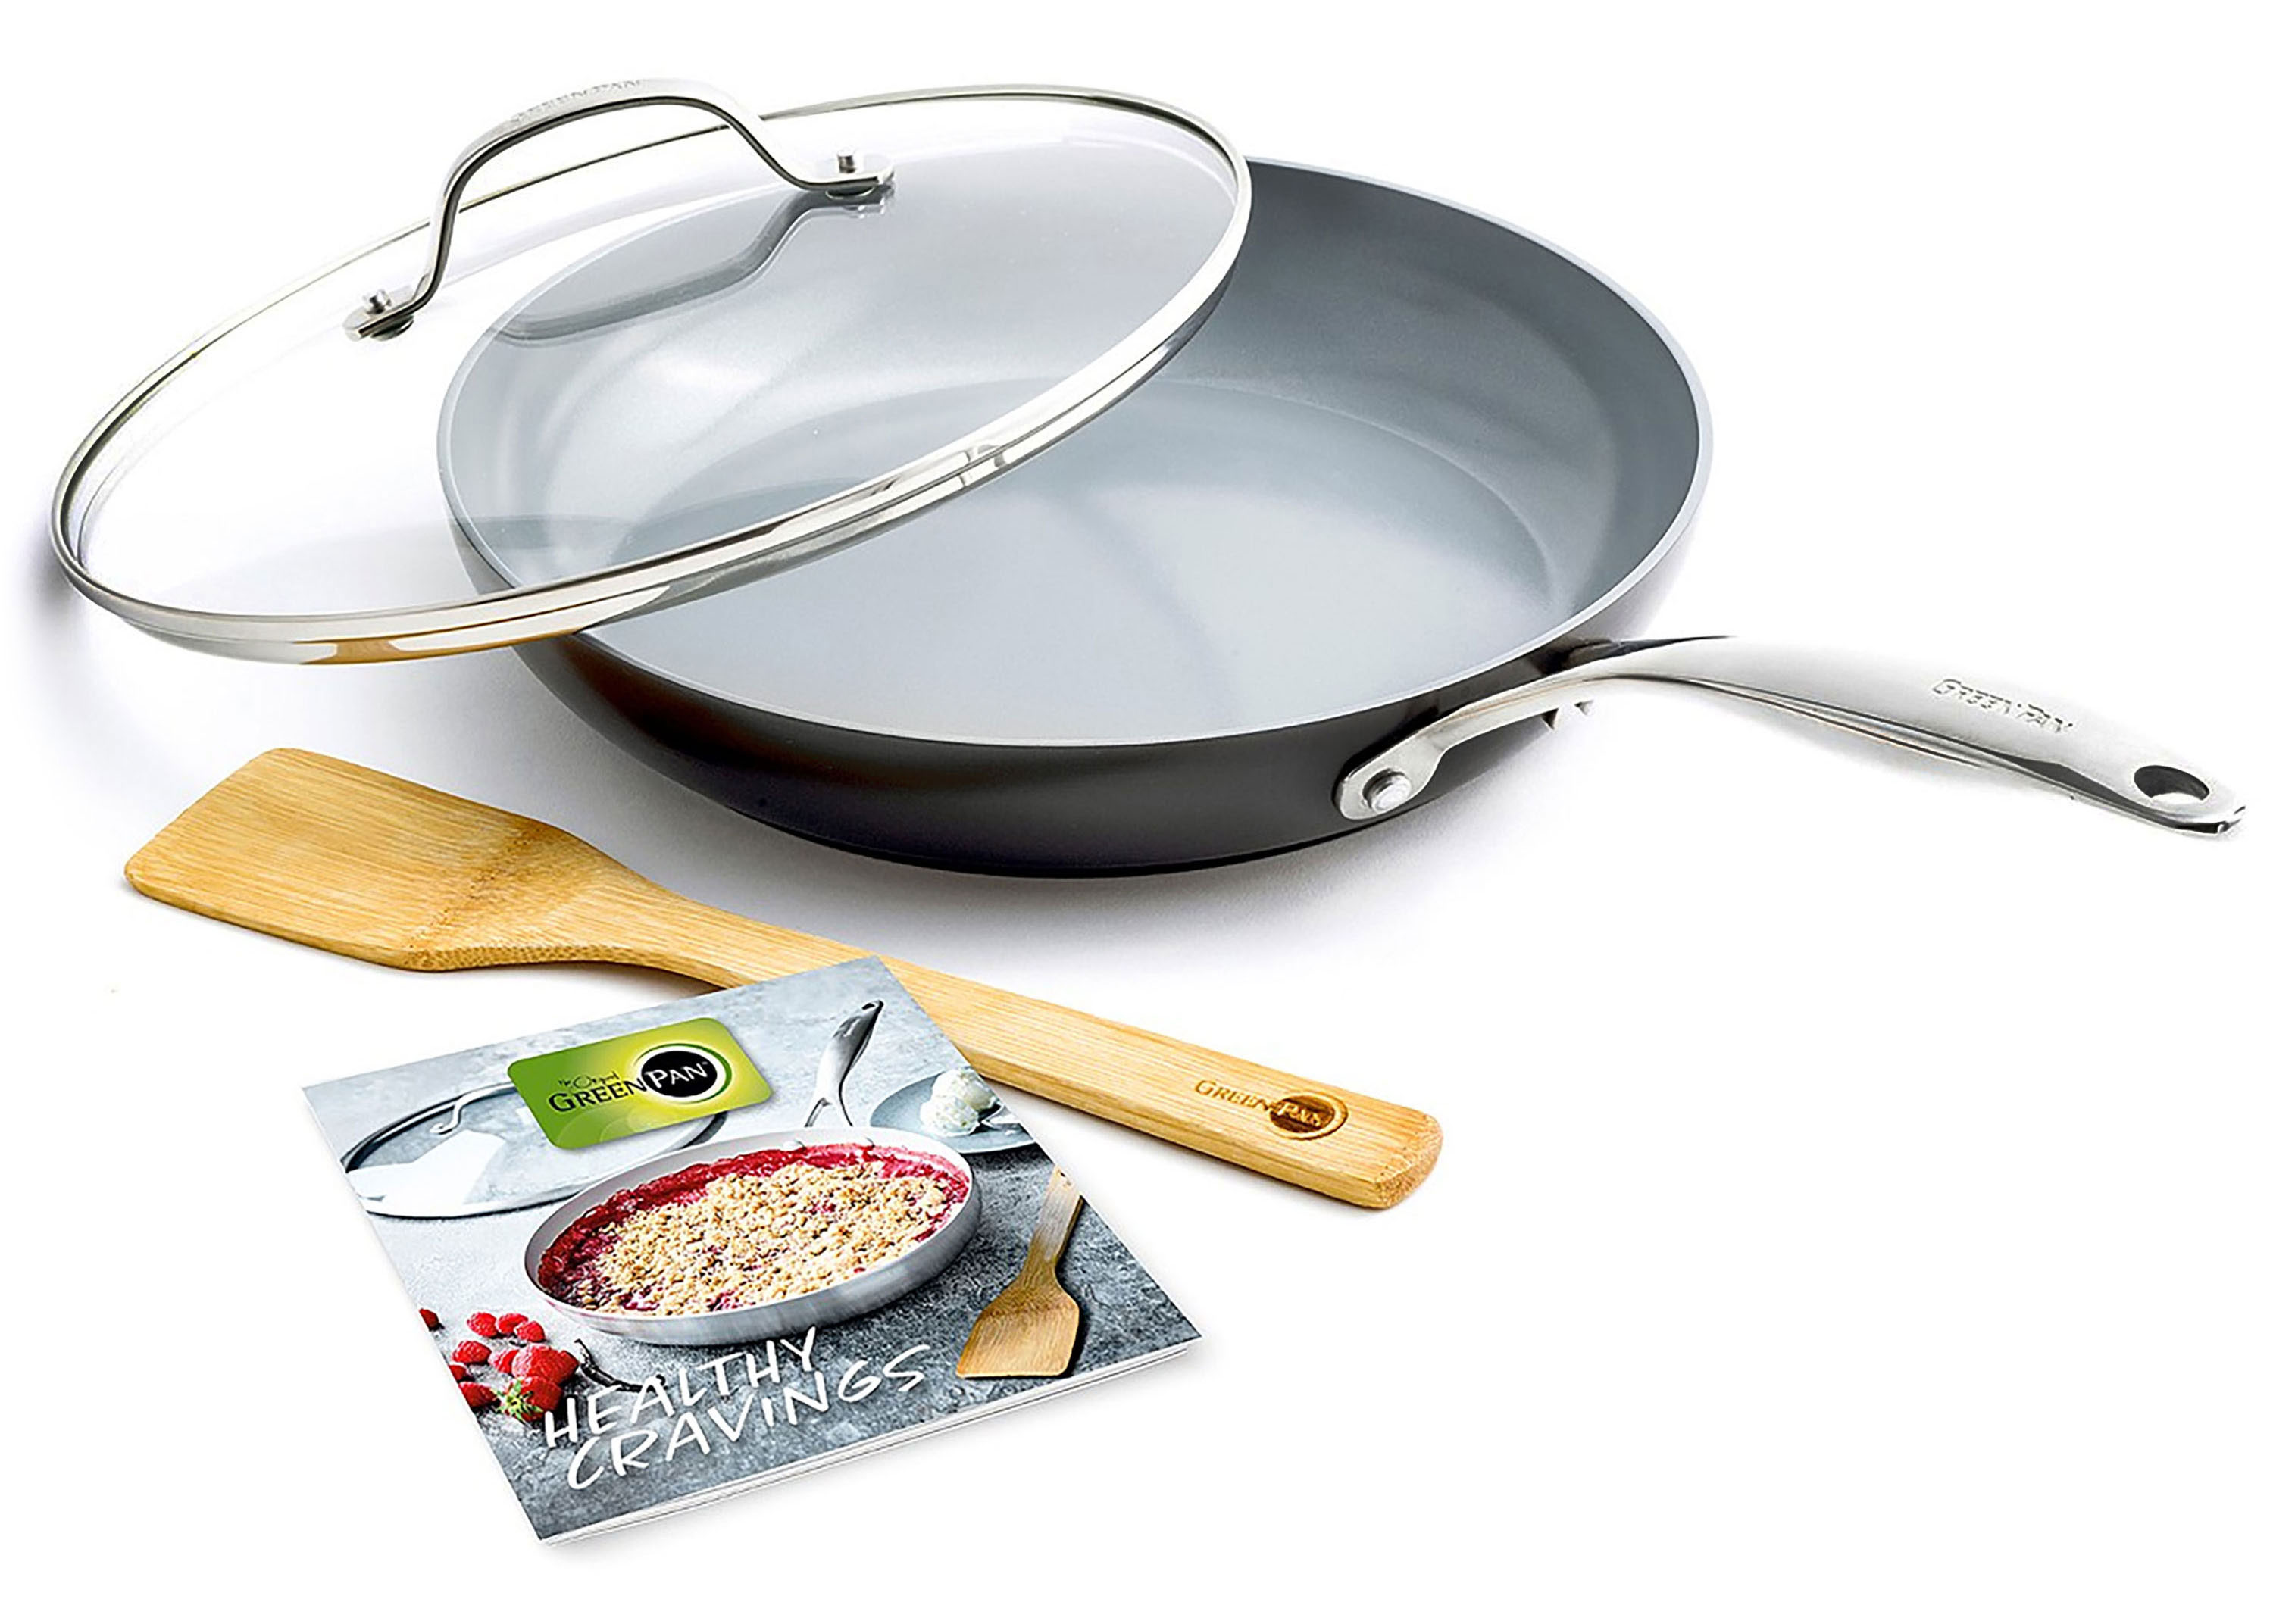 Greenpan Valencia Pro Covered Skillet With Cookbook And